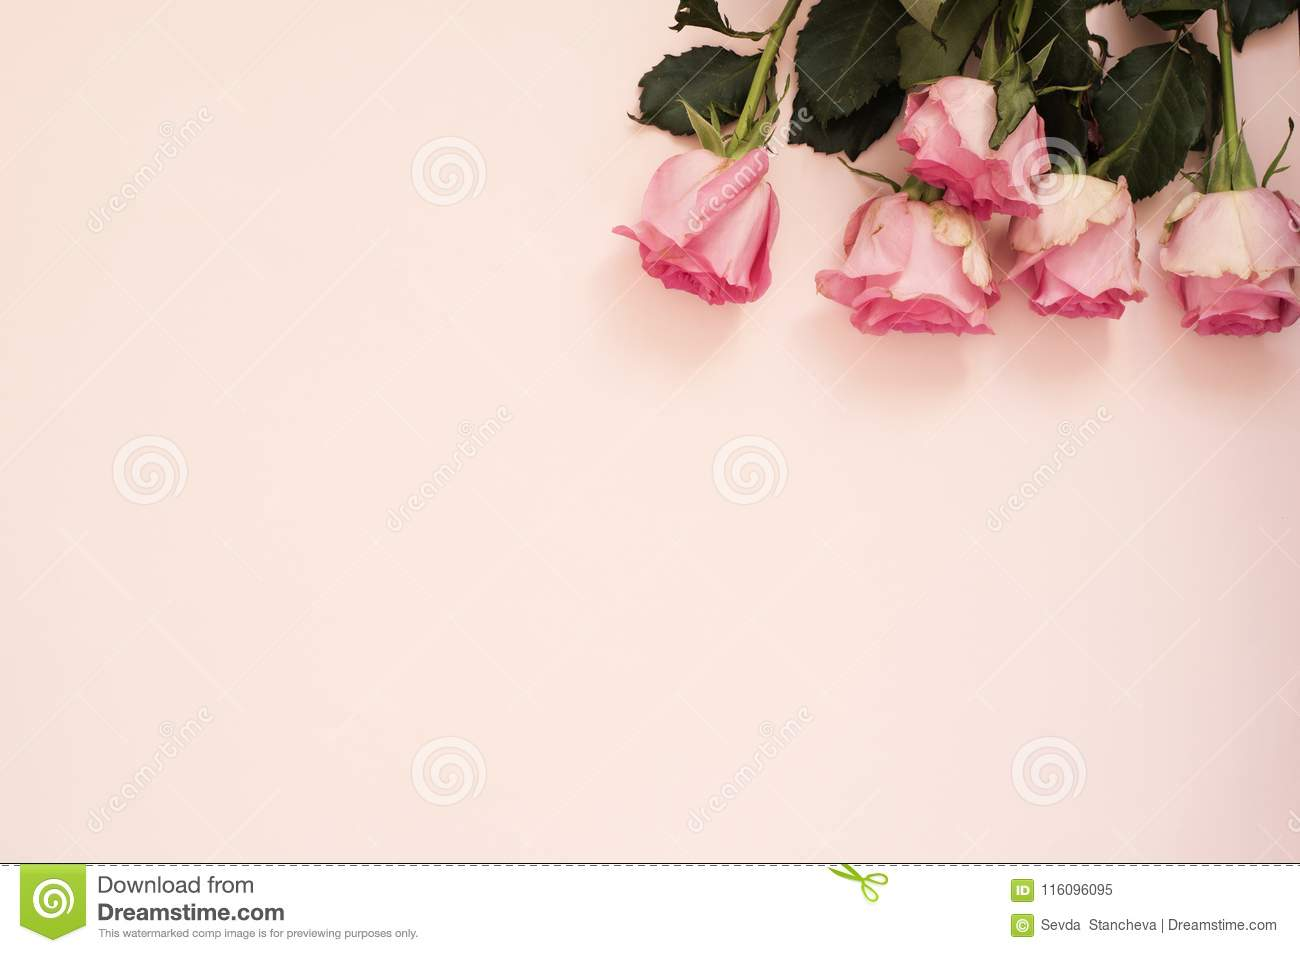 Stunning Pink Bouquet Of Roses On Punchy Pink Background Copy Space